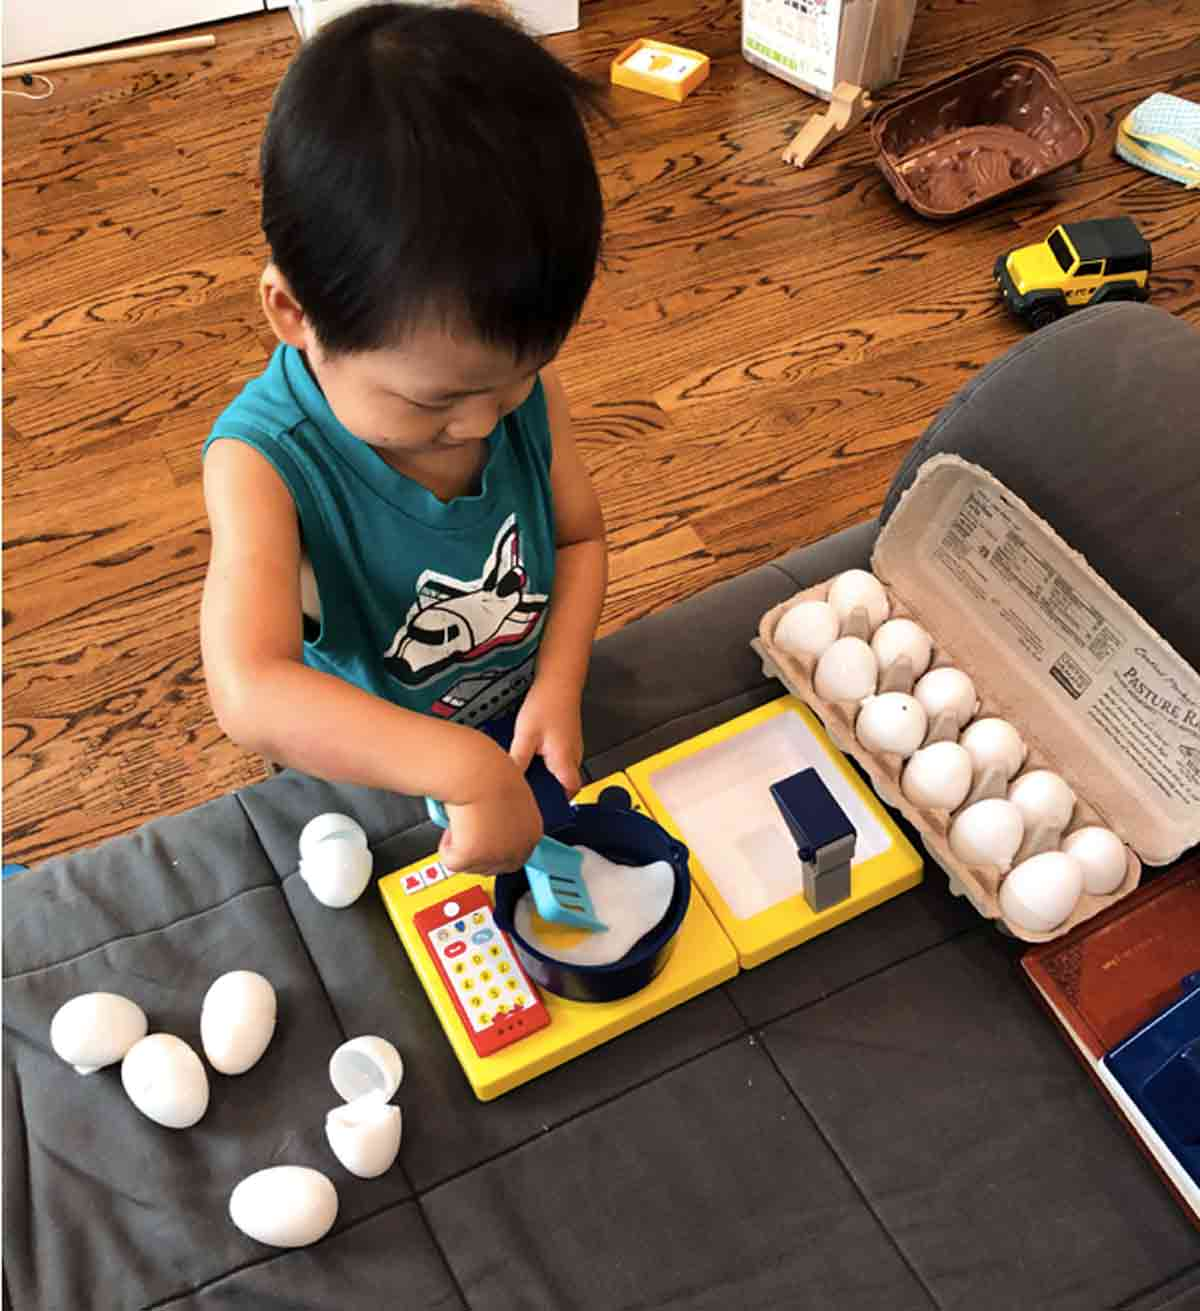 oddler playing with pretend play felt egg on toy cooking pot